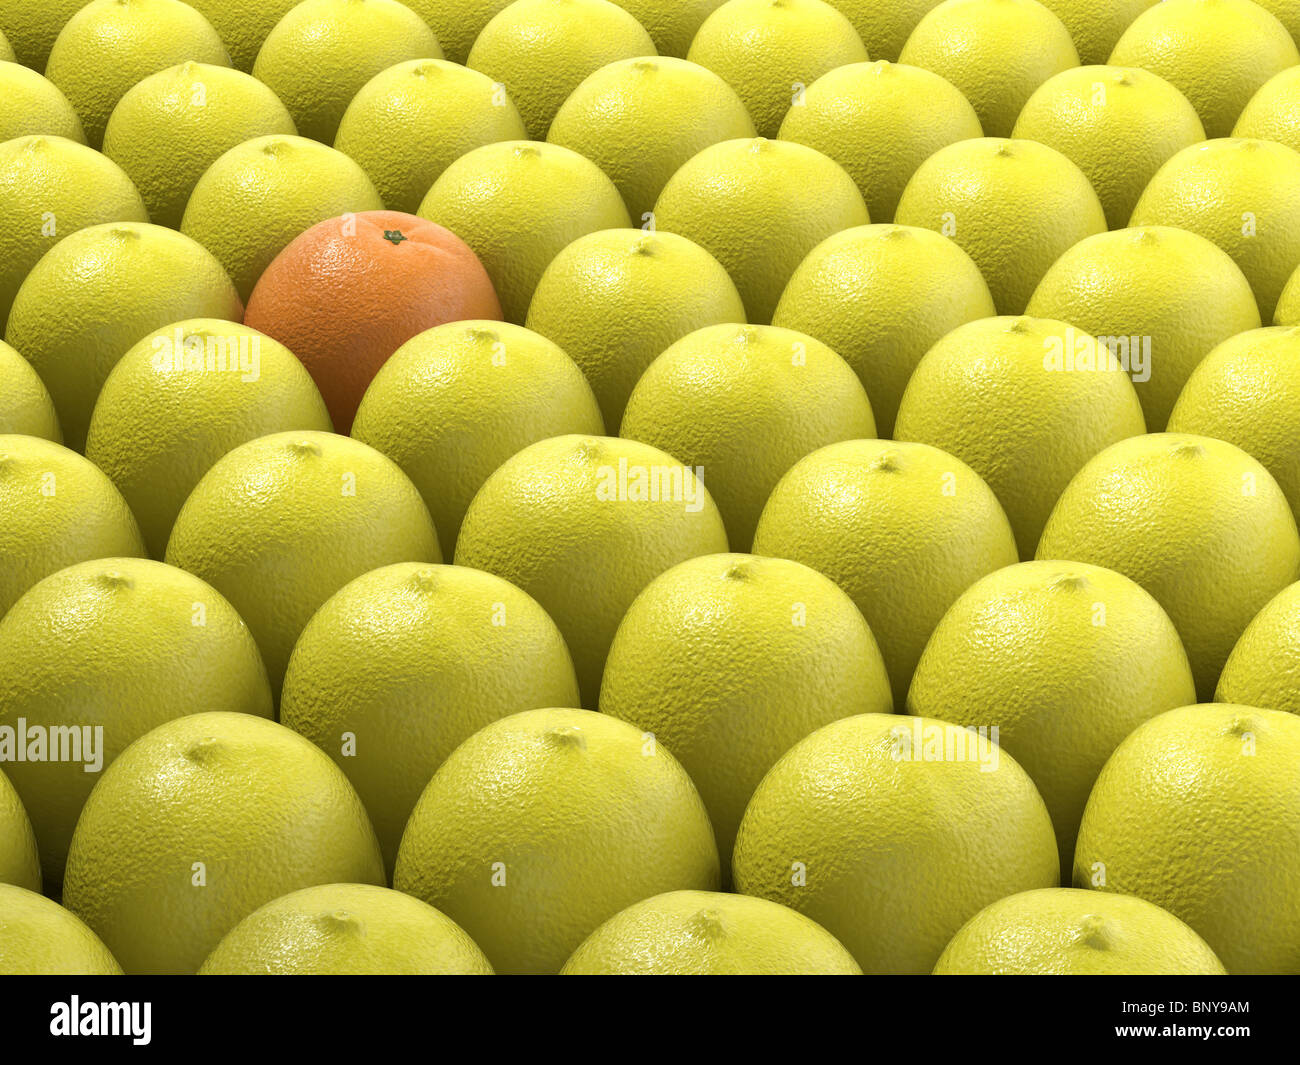 unique orange among many lemons as concept for standing out - Stock Image